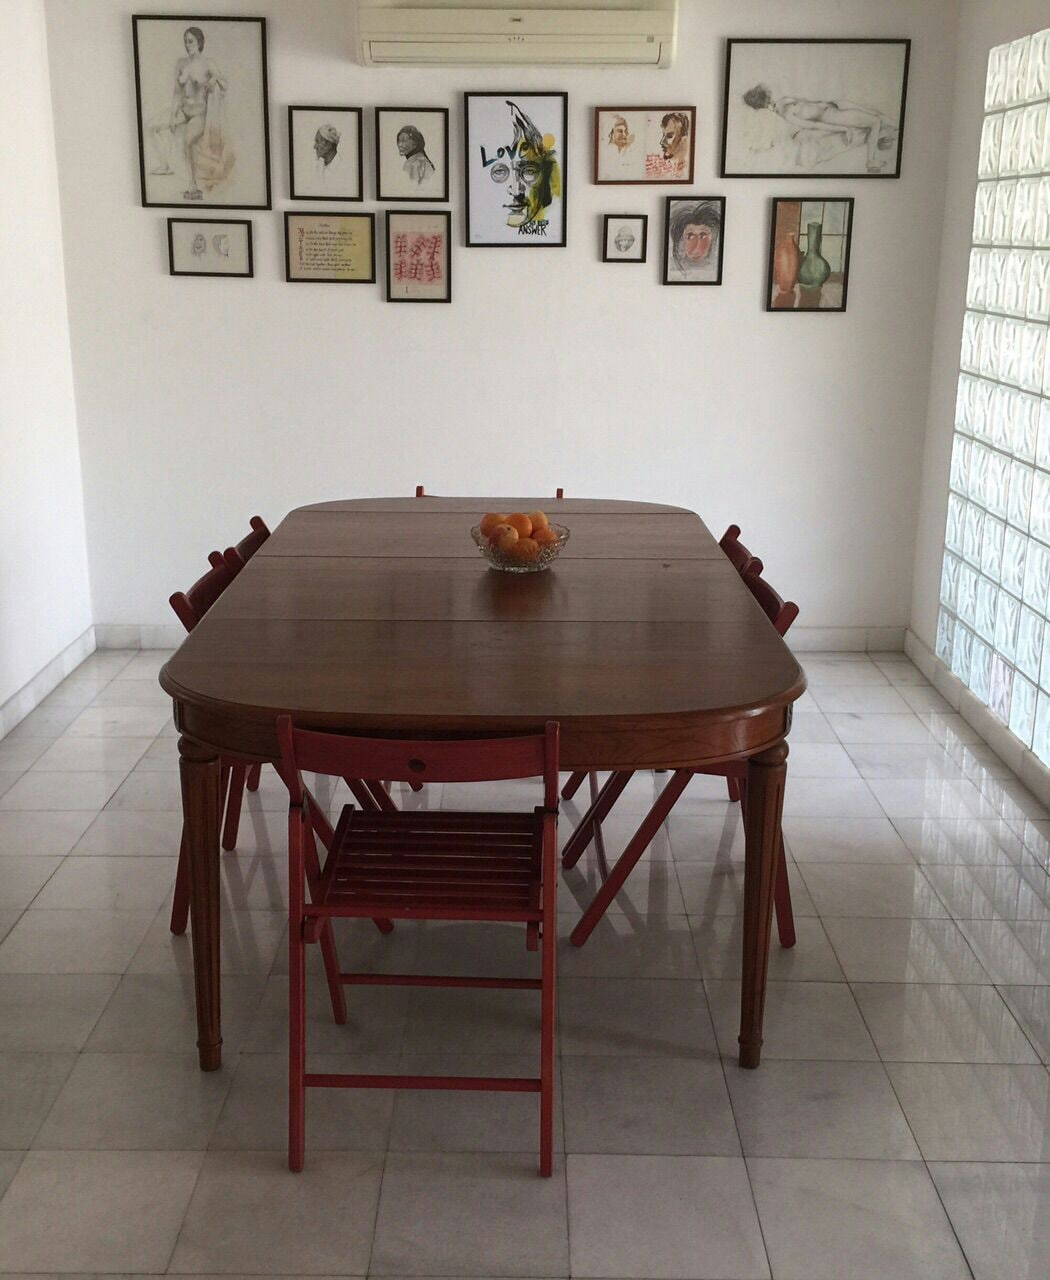 Dine, munch and nibble in our dining room